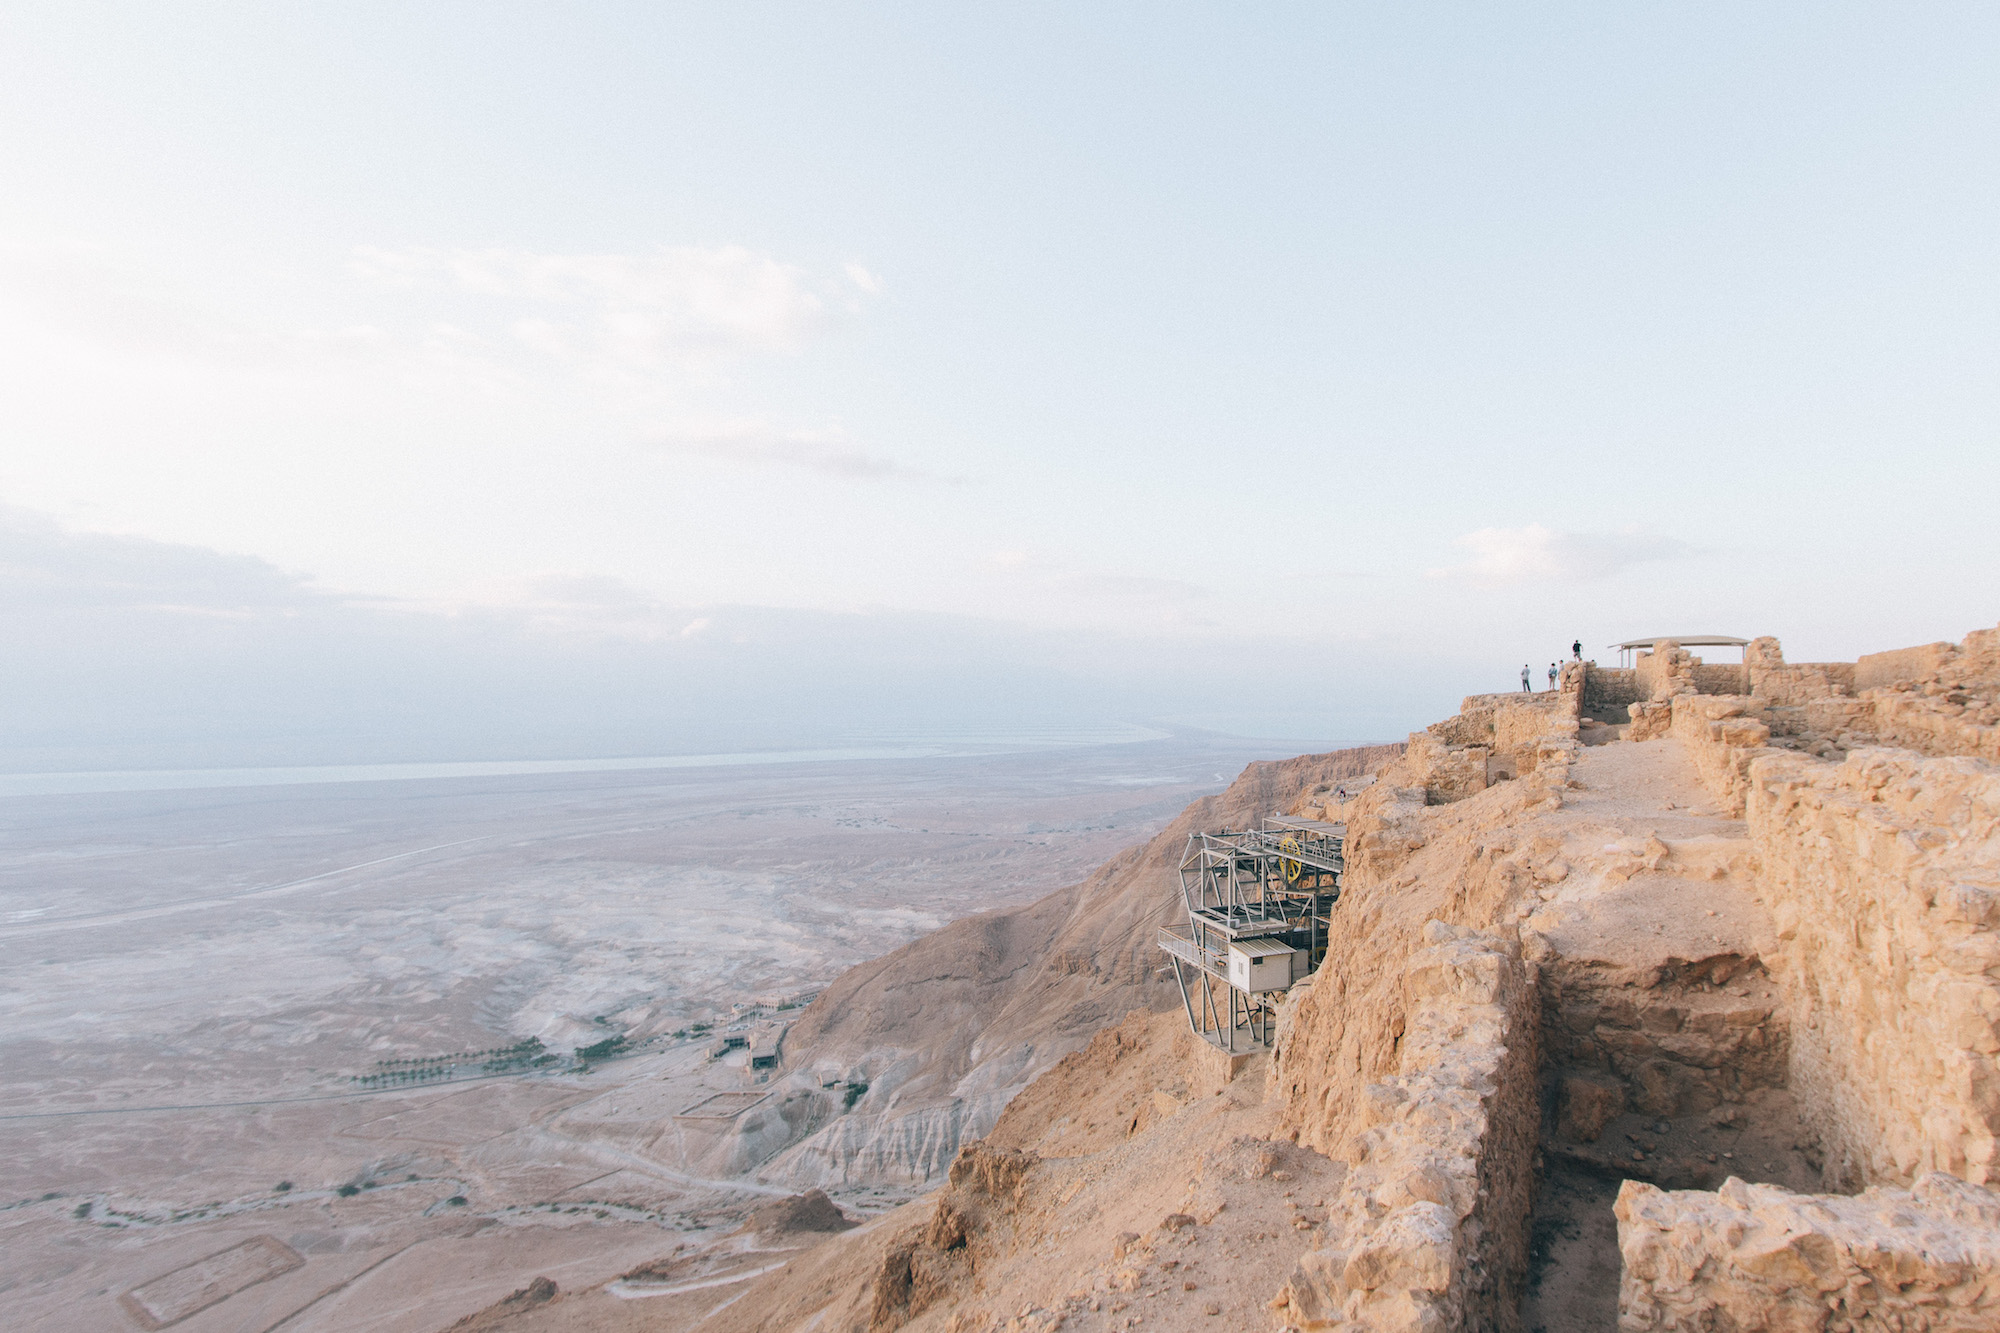 Clifftop views - This was easily one of the highlights of the trip, due to 360 views of the desert with the Dead Sea in the distance. Waking up early to experience the sunrise is an absolute must.